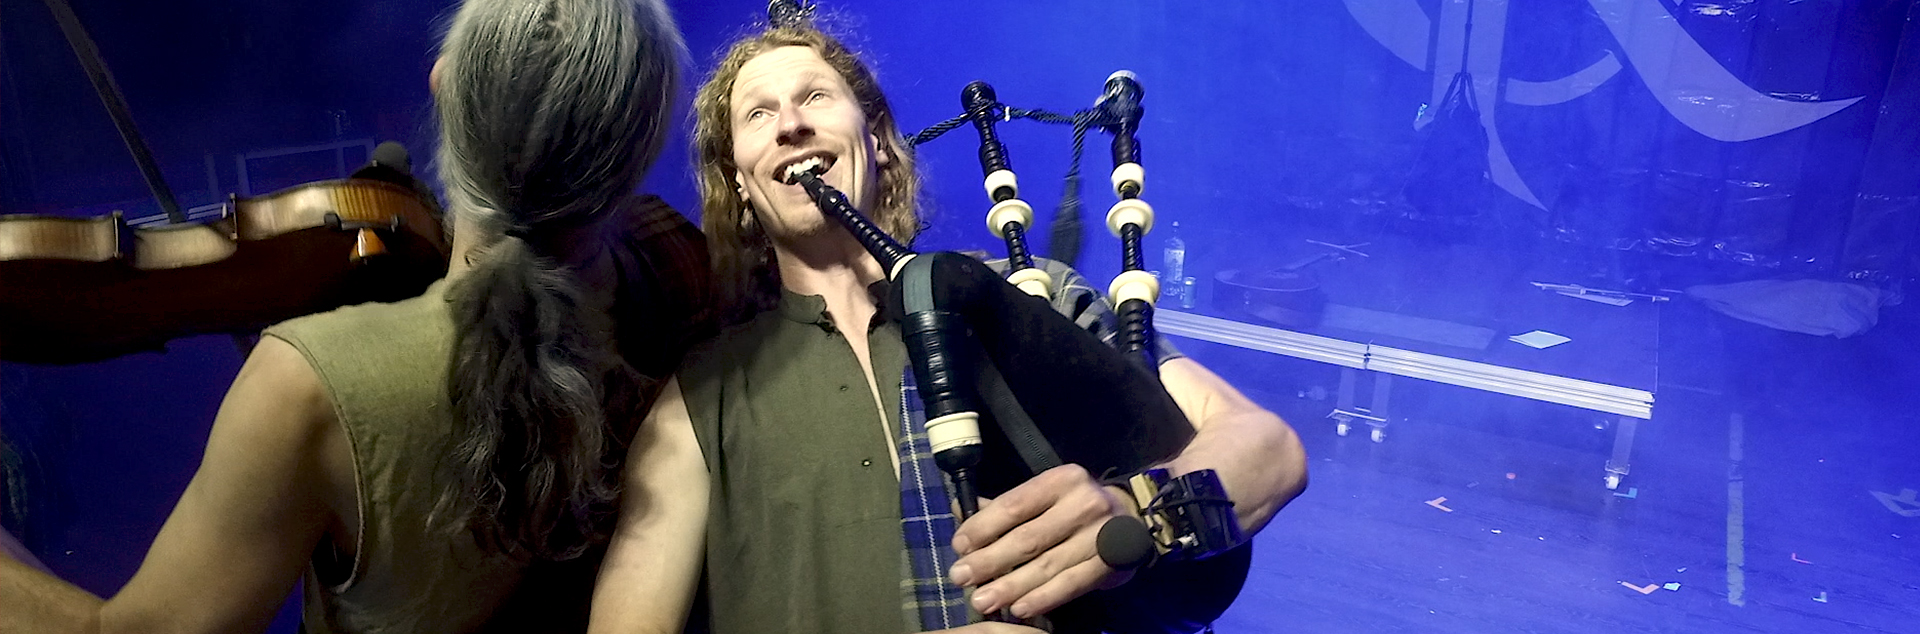 Glen-Coe-The-Pumpin's-Fancy-Crossing-The-Minch-at-Odin's-Krieger-Fest-Brazil-by-Rapalje-Celtic-Folk-Music